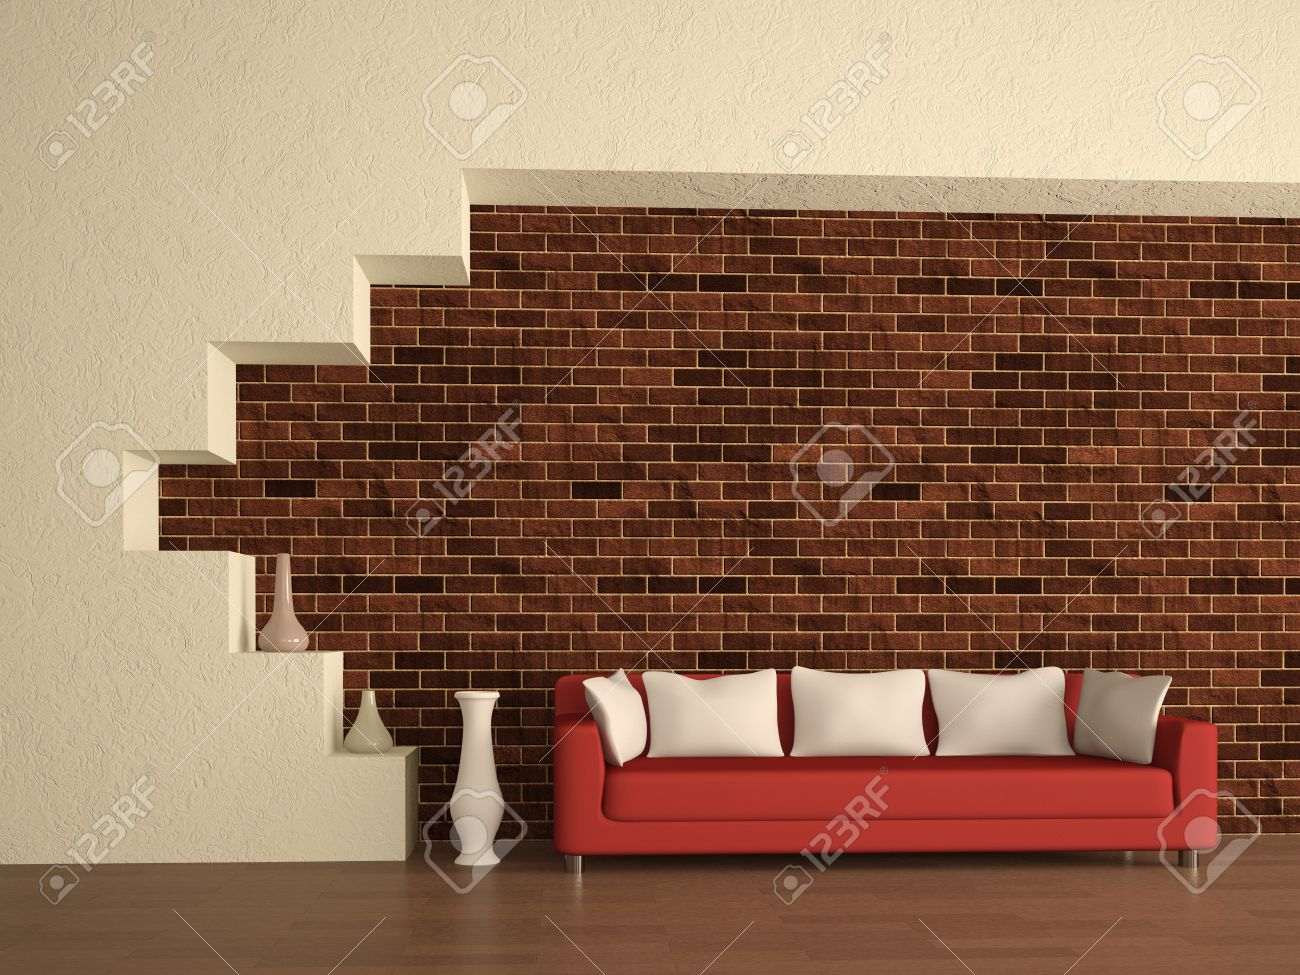 Sofa The Brick Fair The Red Sofa Near A Brick Wall Stock Photo Picture And Royalty . Design Ideas